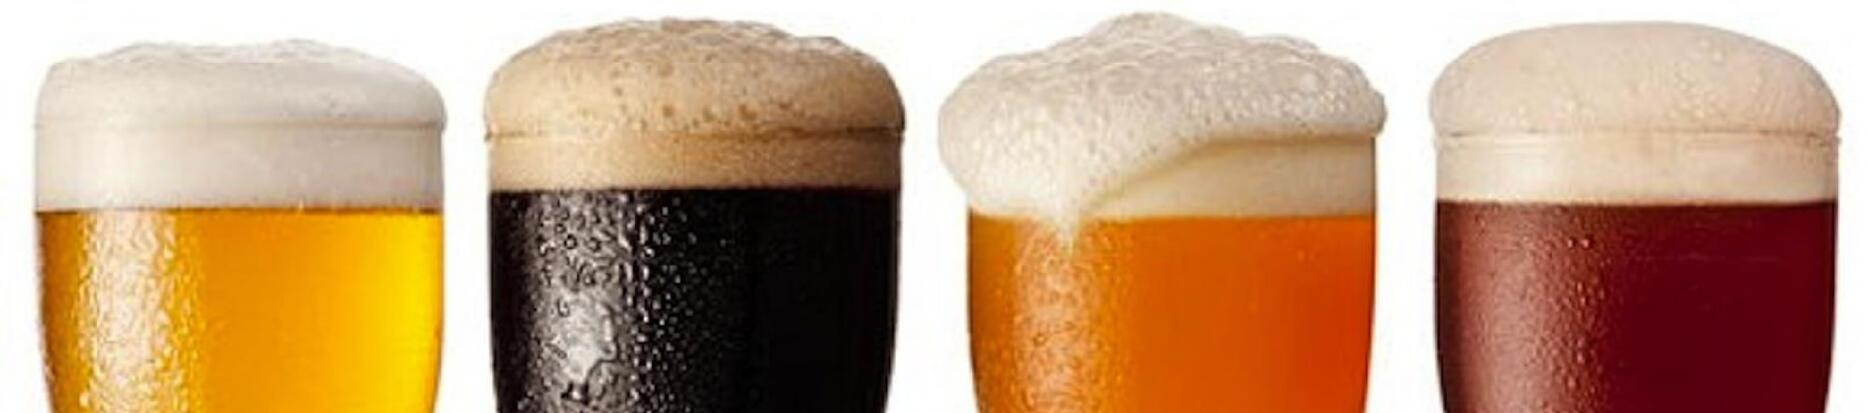 Offerta Beer Attraction 2015 Fiera di Rimini